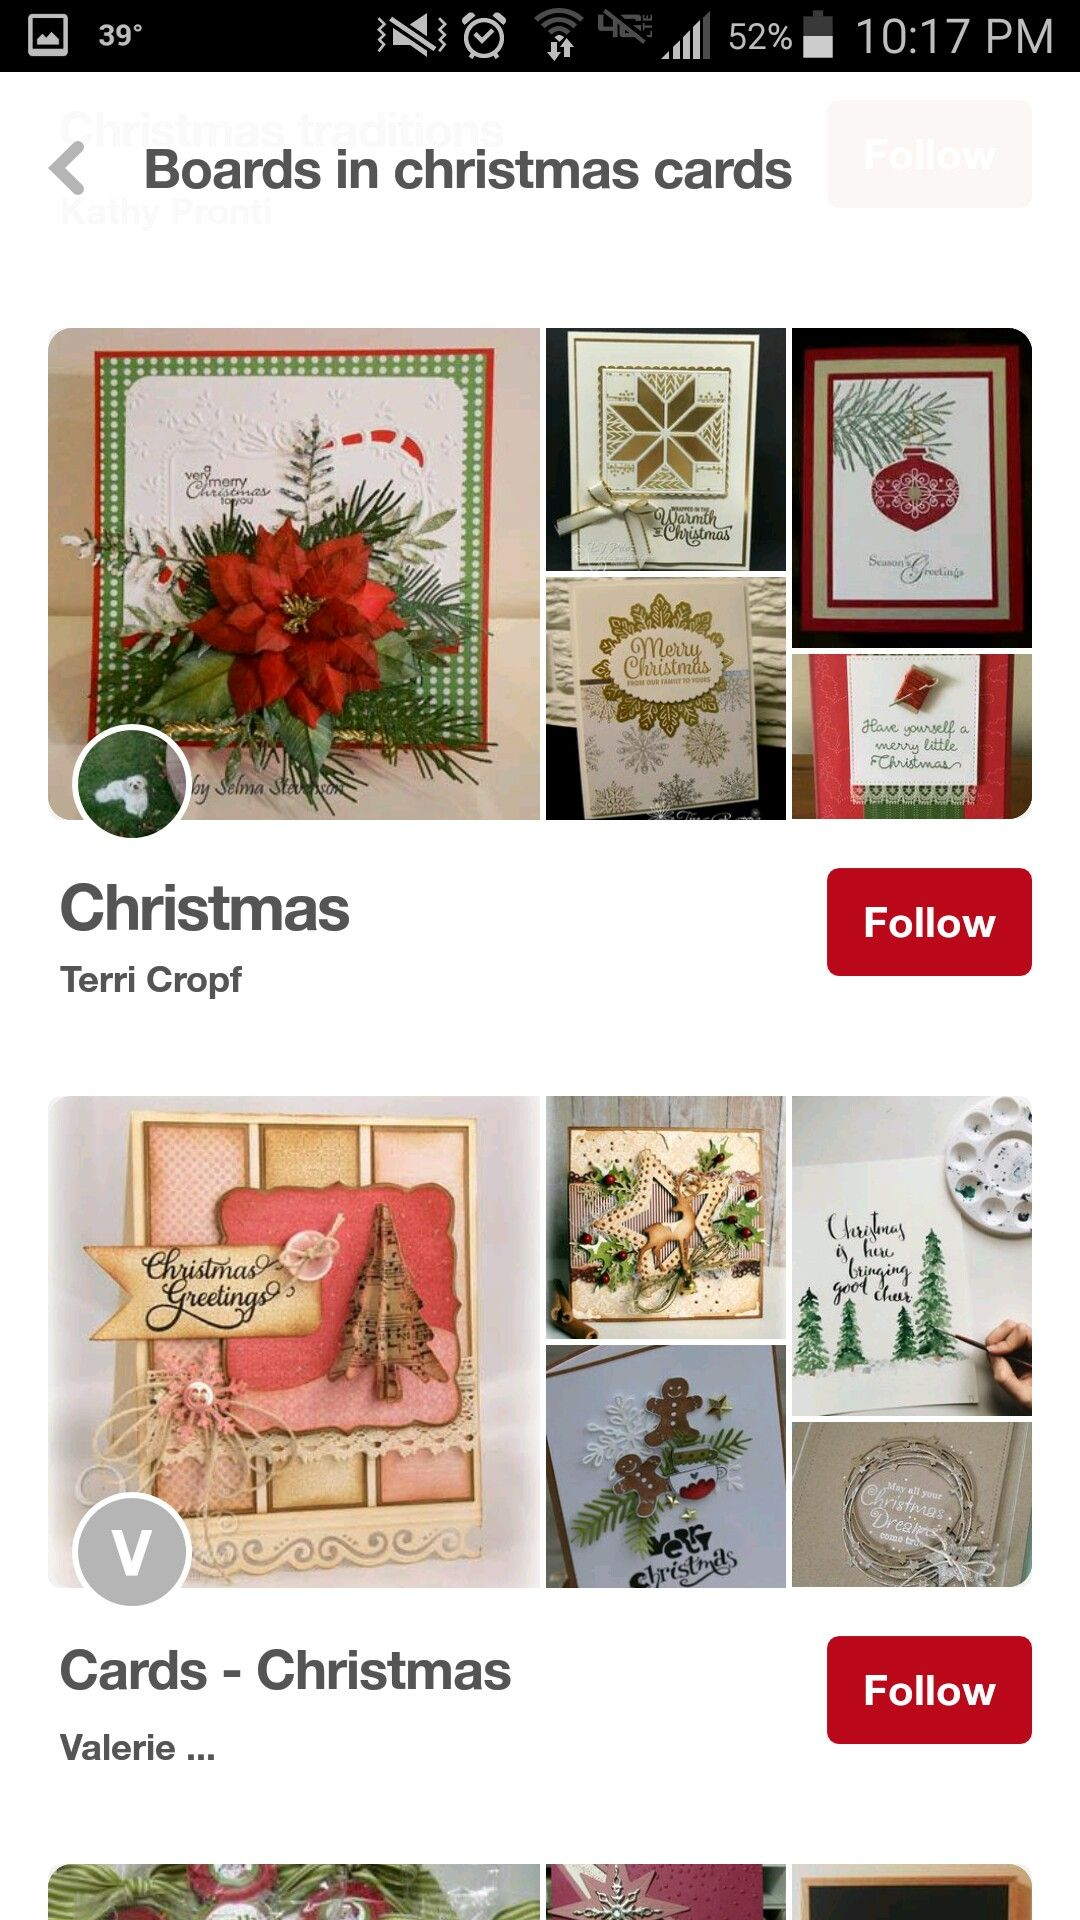 Pin by Kathy Truax on Boards to look at (With images